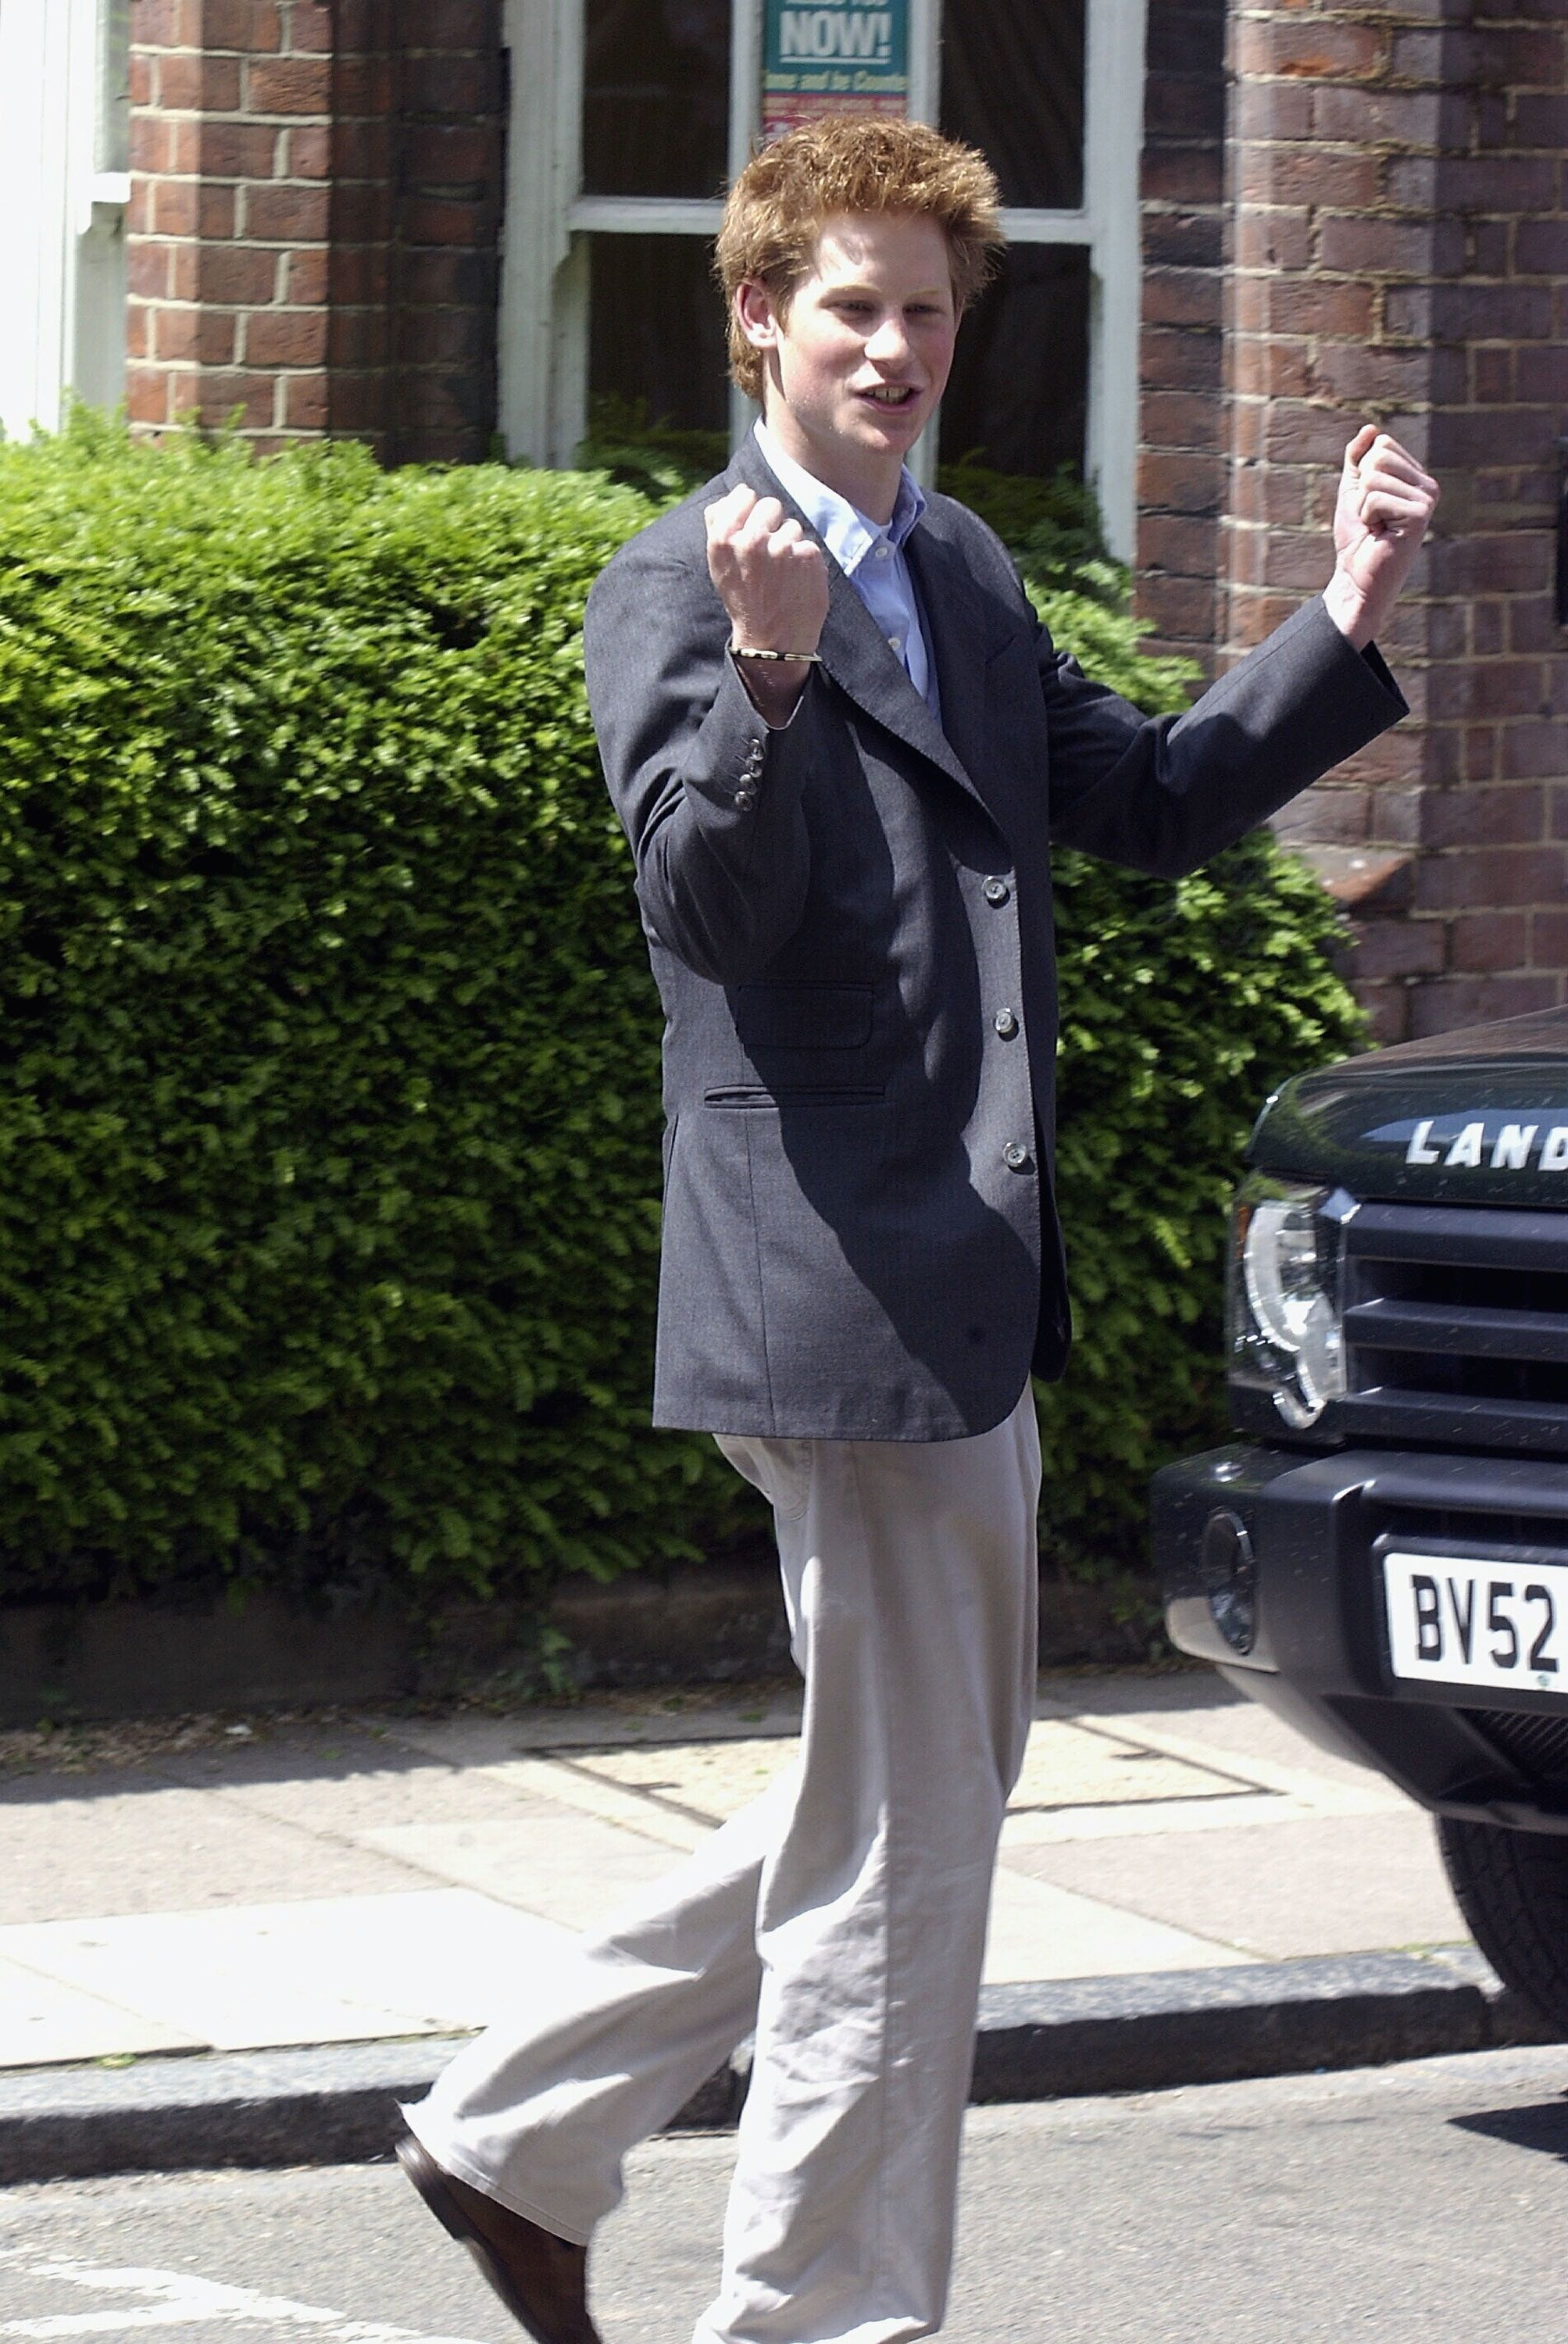 Prince Harry clenches his fist as he leaves Eton College on June 12, 2003.